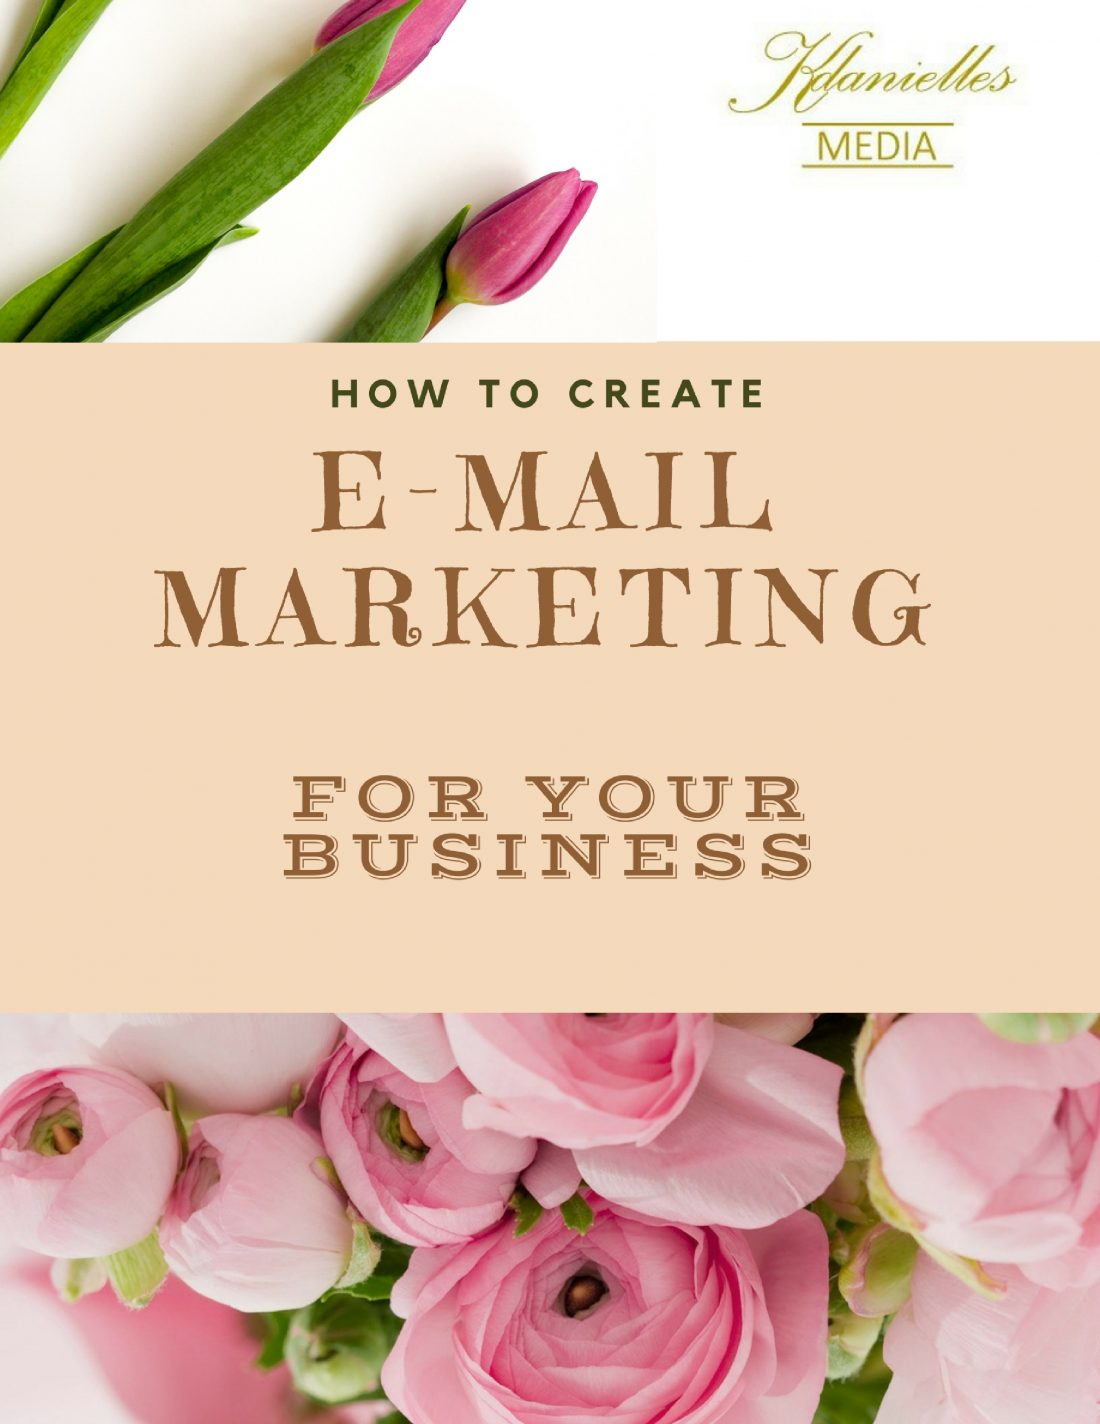 How to create E-mail marketing for your business.www.kdaniellesmedia.com